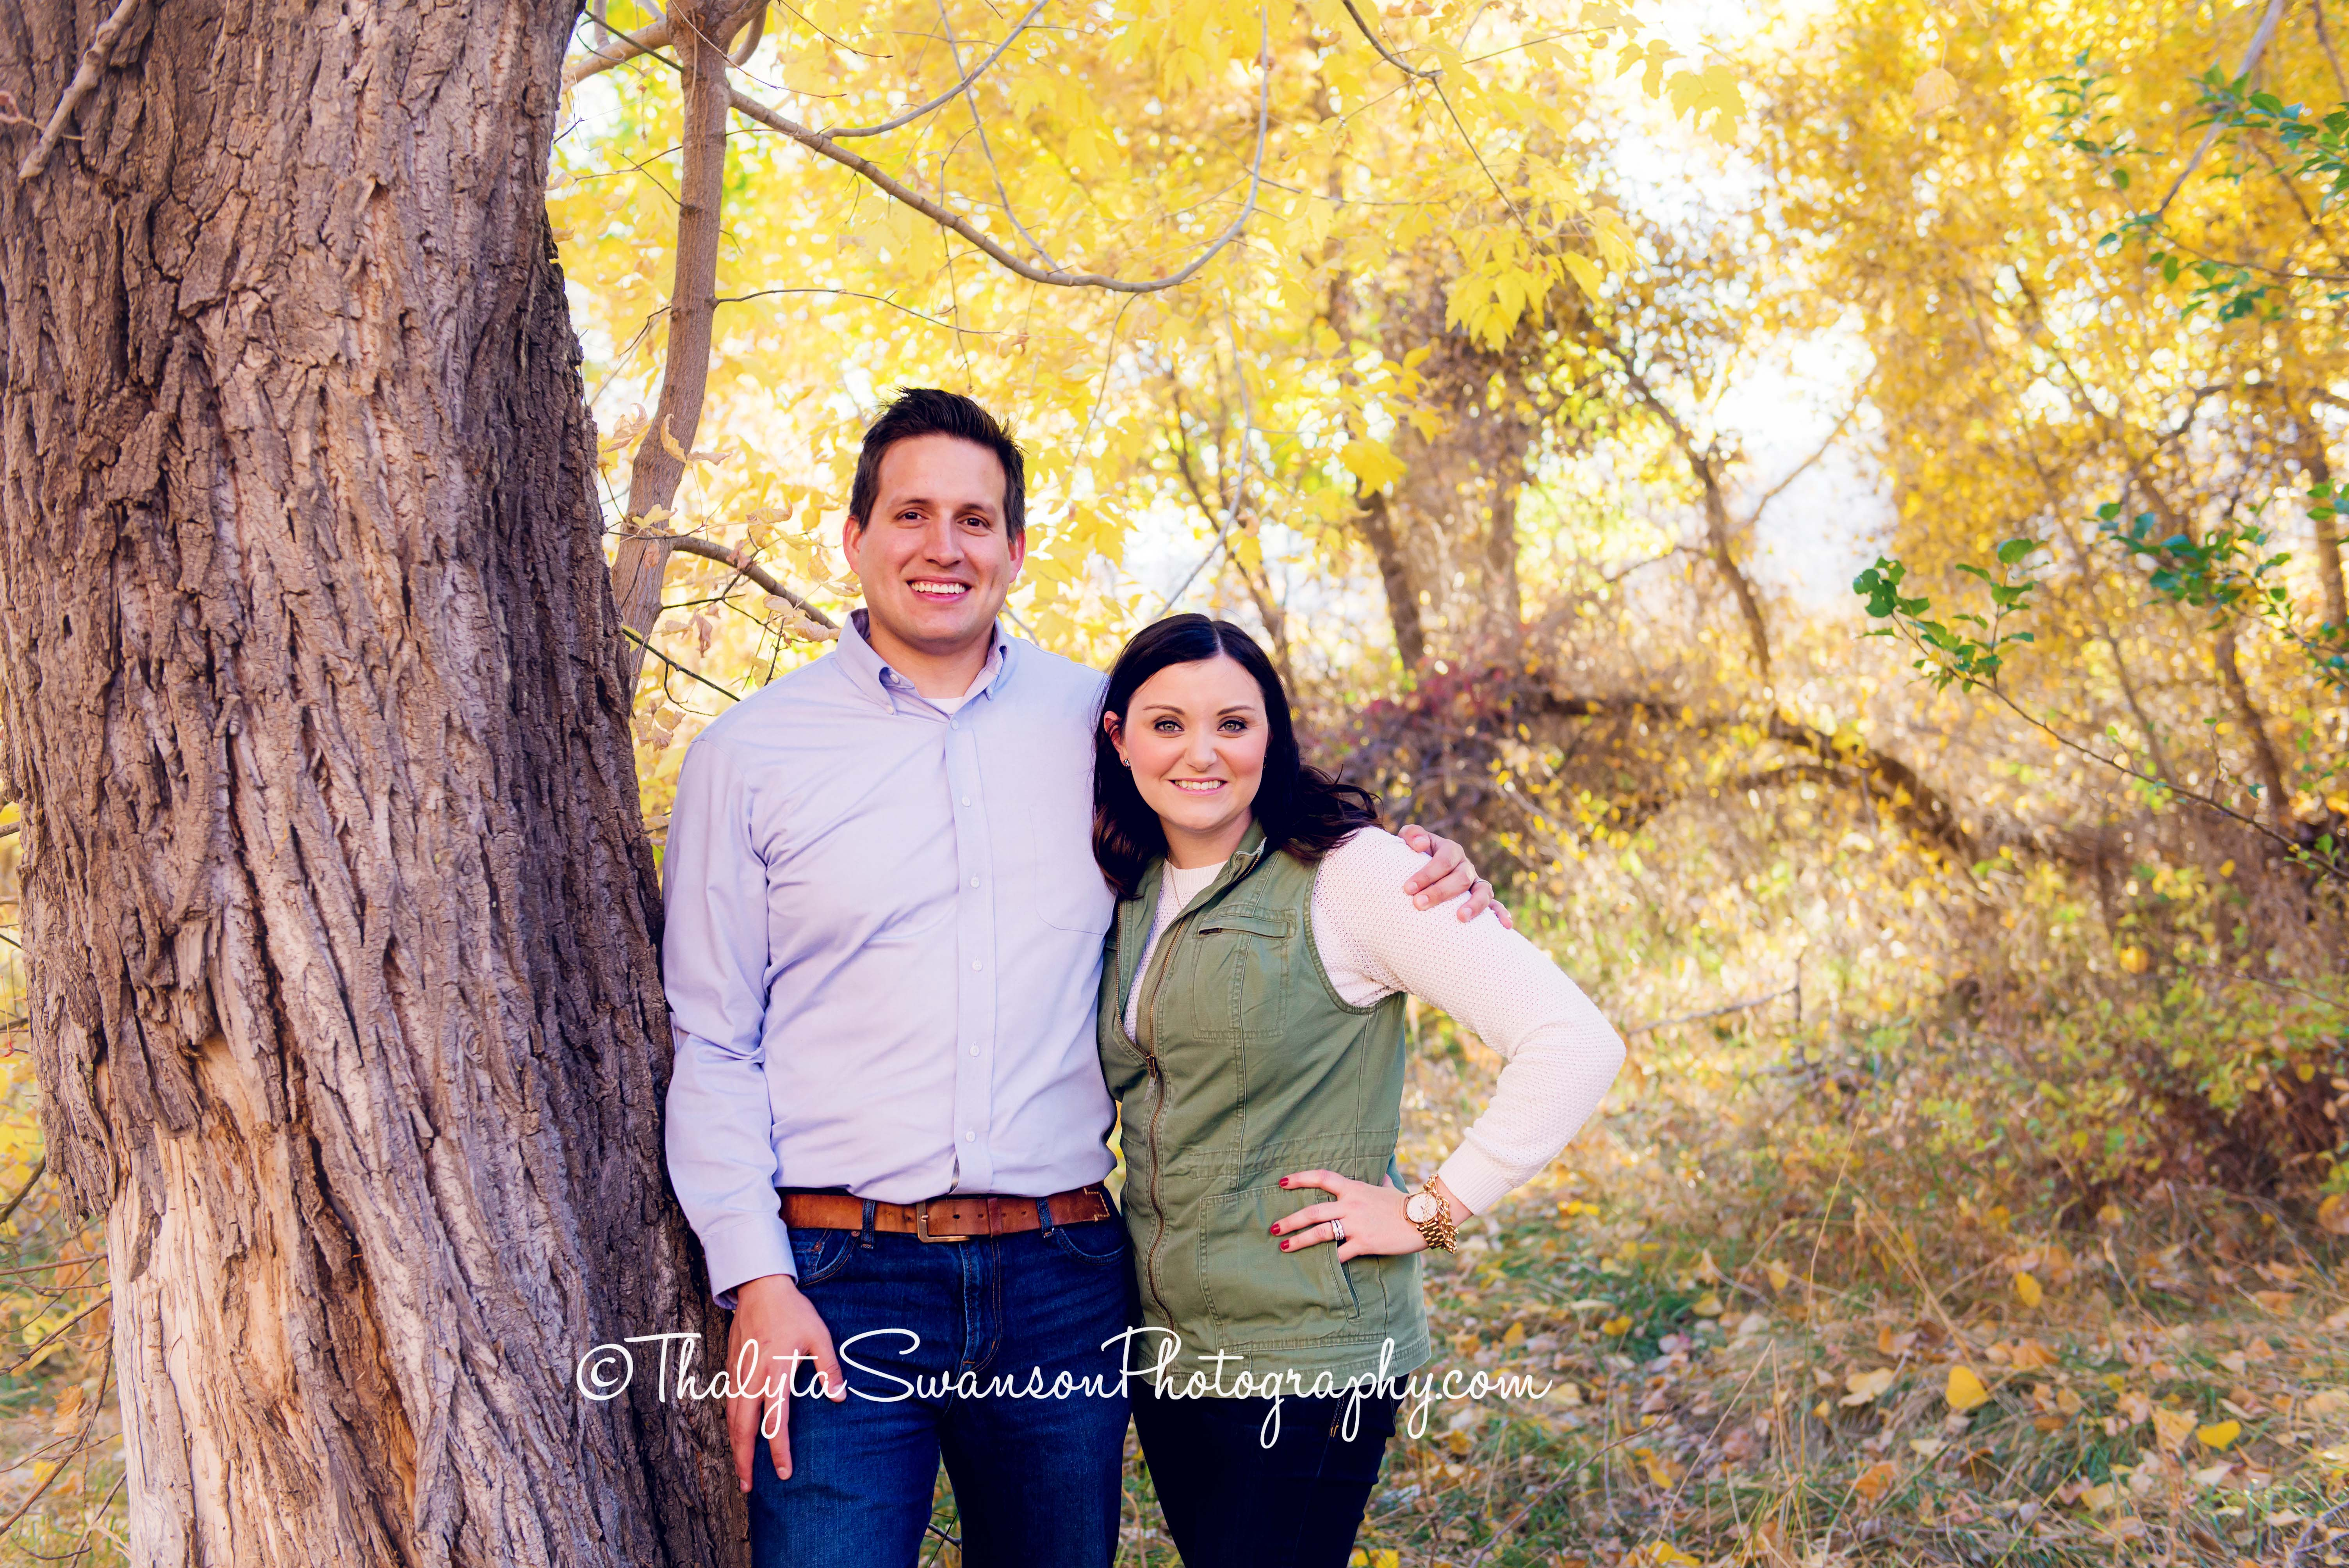 fall-family-photography-fort-collins-photographer-thalyta-swanson-photography-18